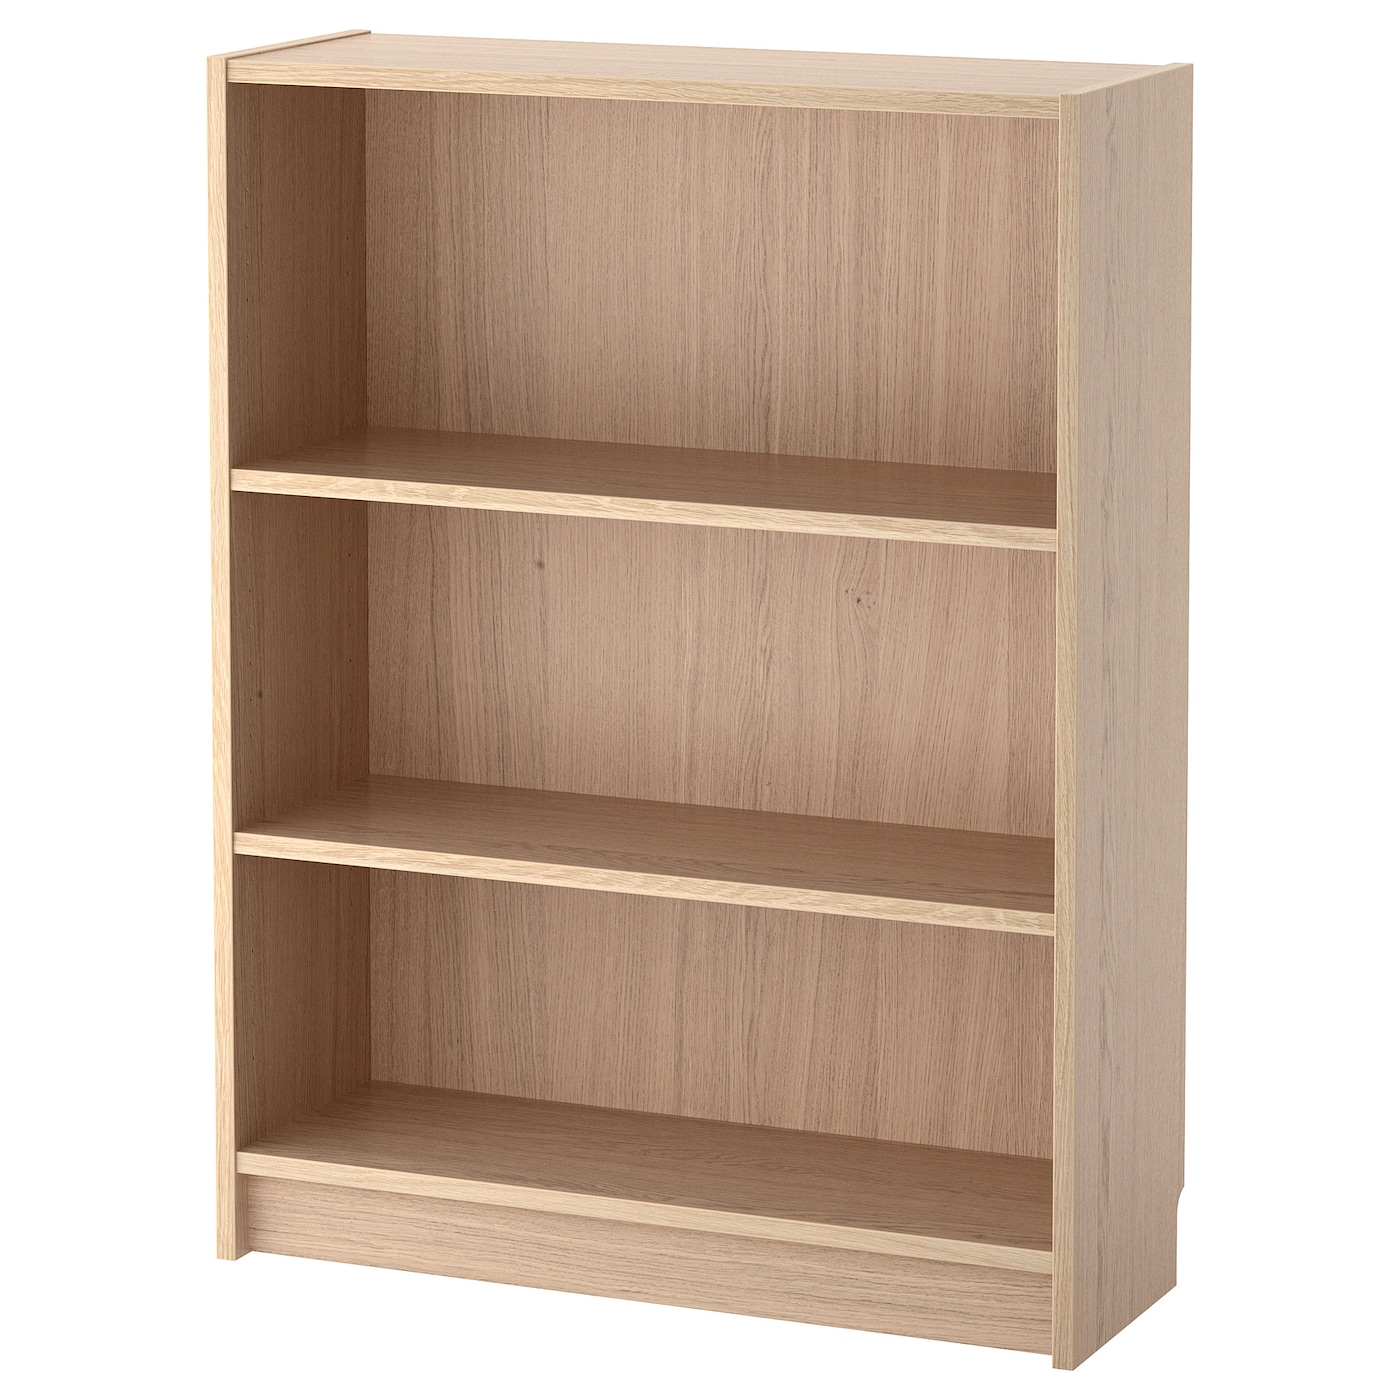 ikea billy bookcase adjustable shelves adapt space between shelves according to your needs - Ikea Billy Bookshelves